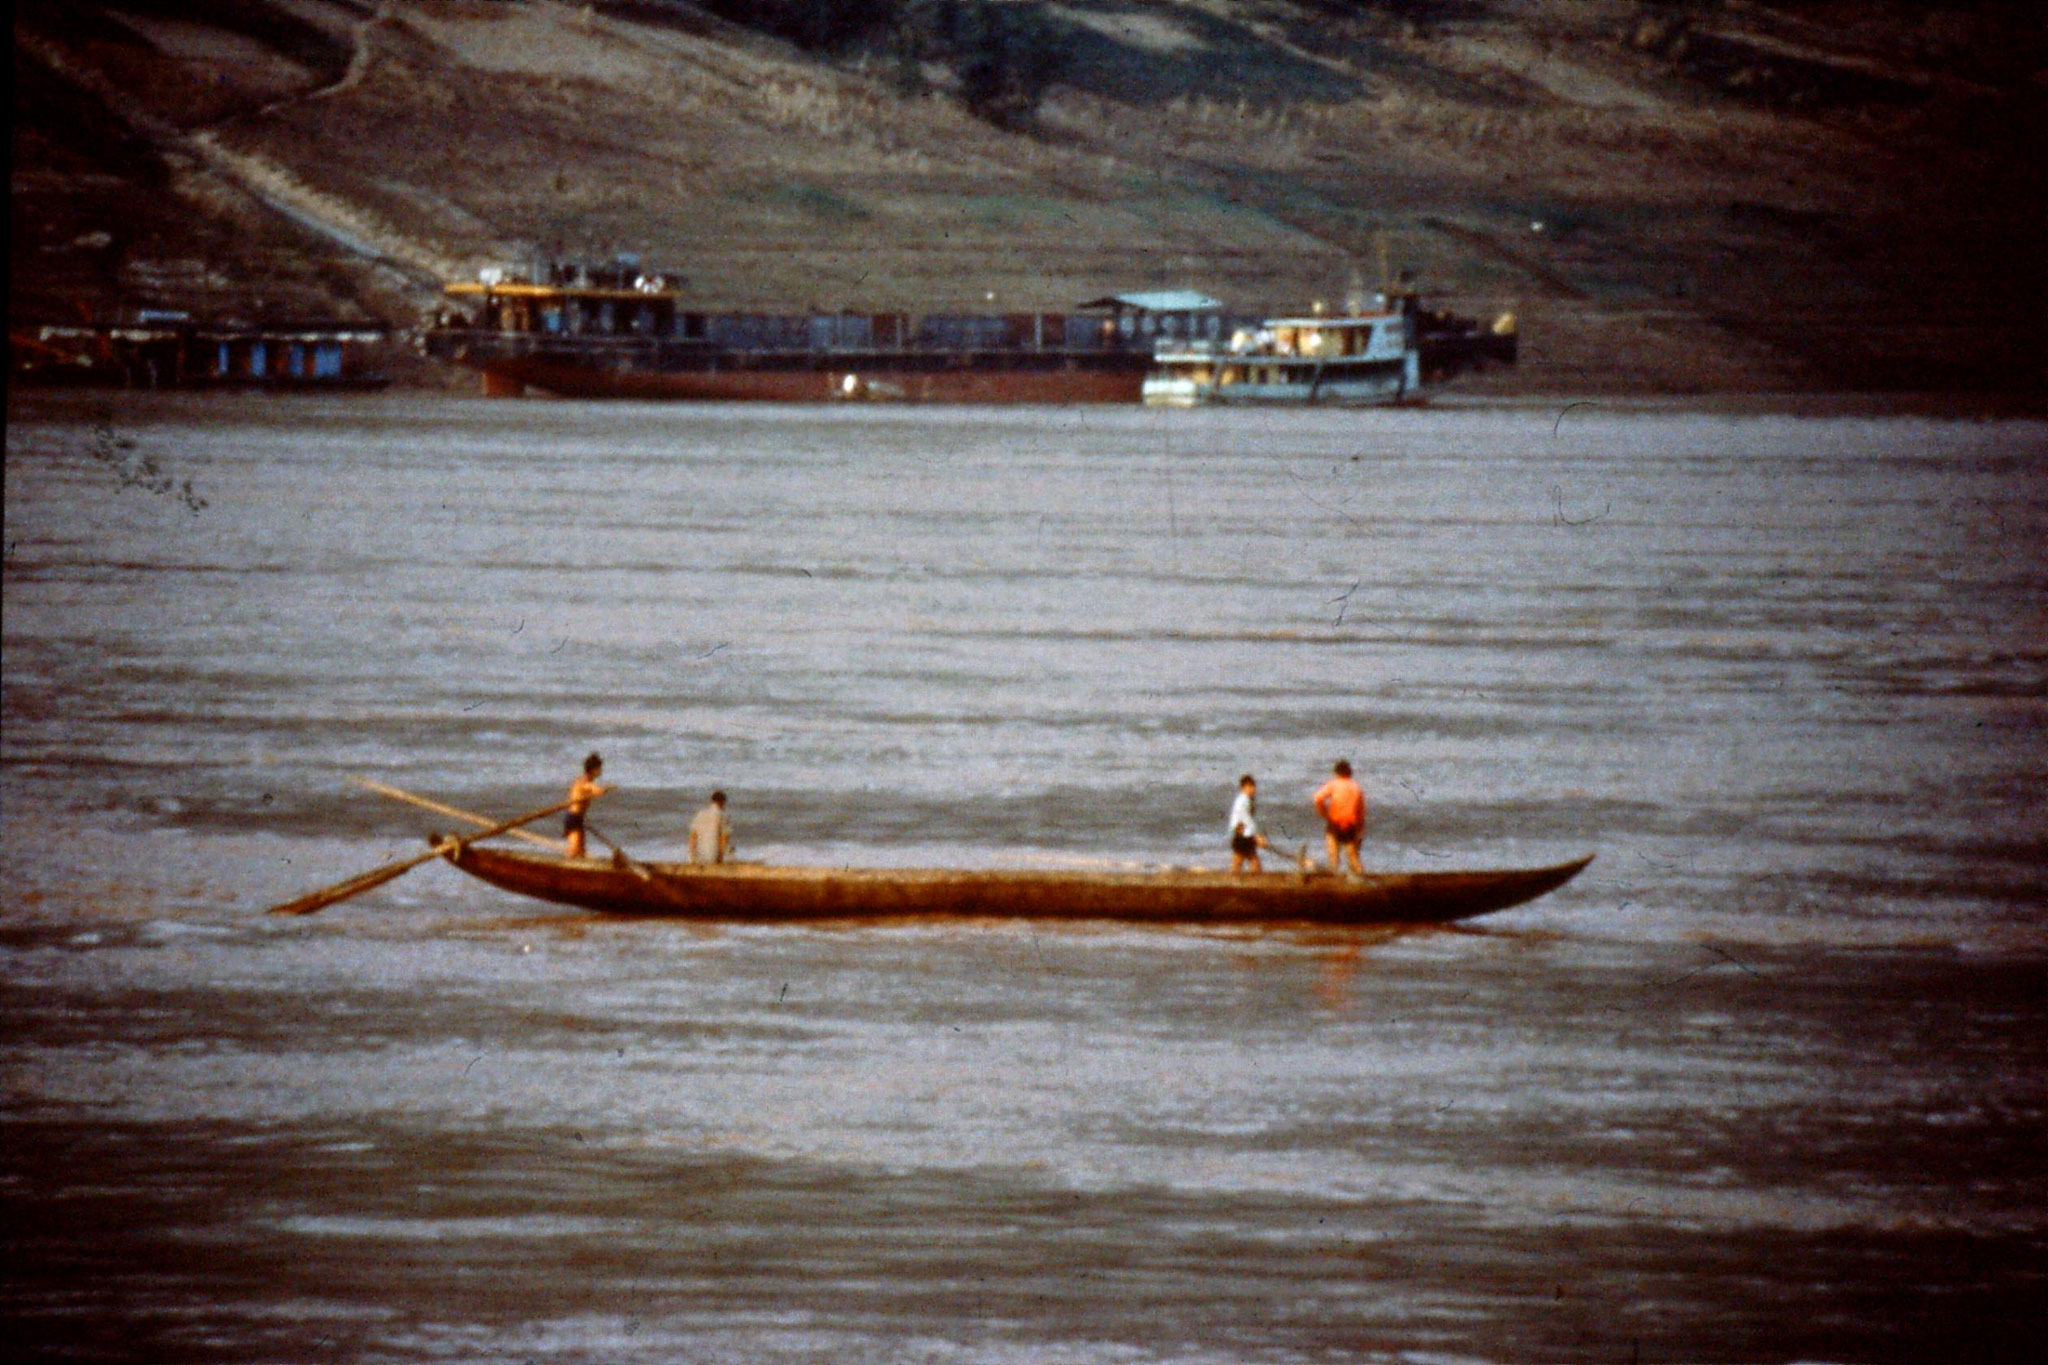 10/8/1989:12: 1900 two rowing boats at Fengjie